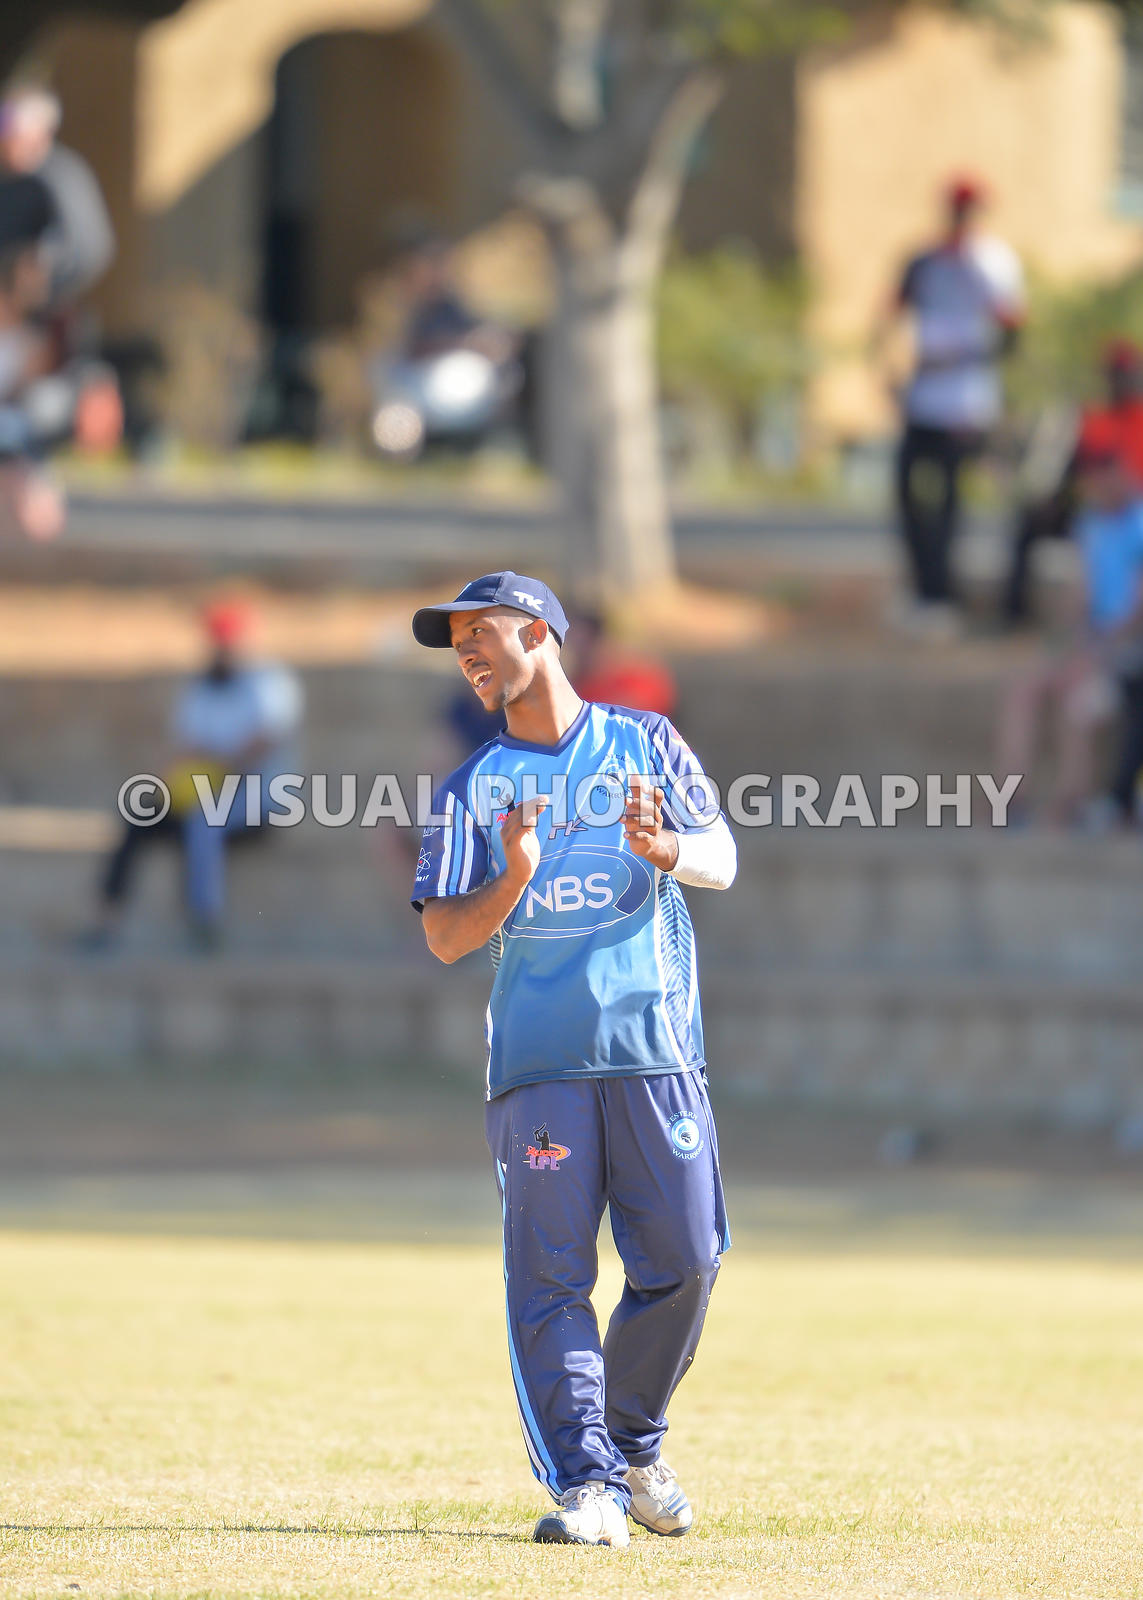 Cricket - 2018  day match (18-over match), Johannesburg - South Atrica - Cats - Warriors